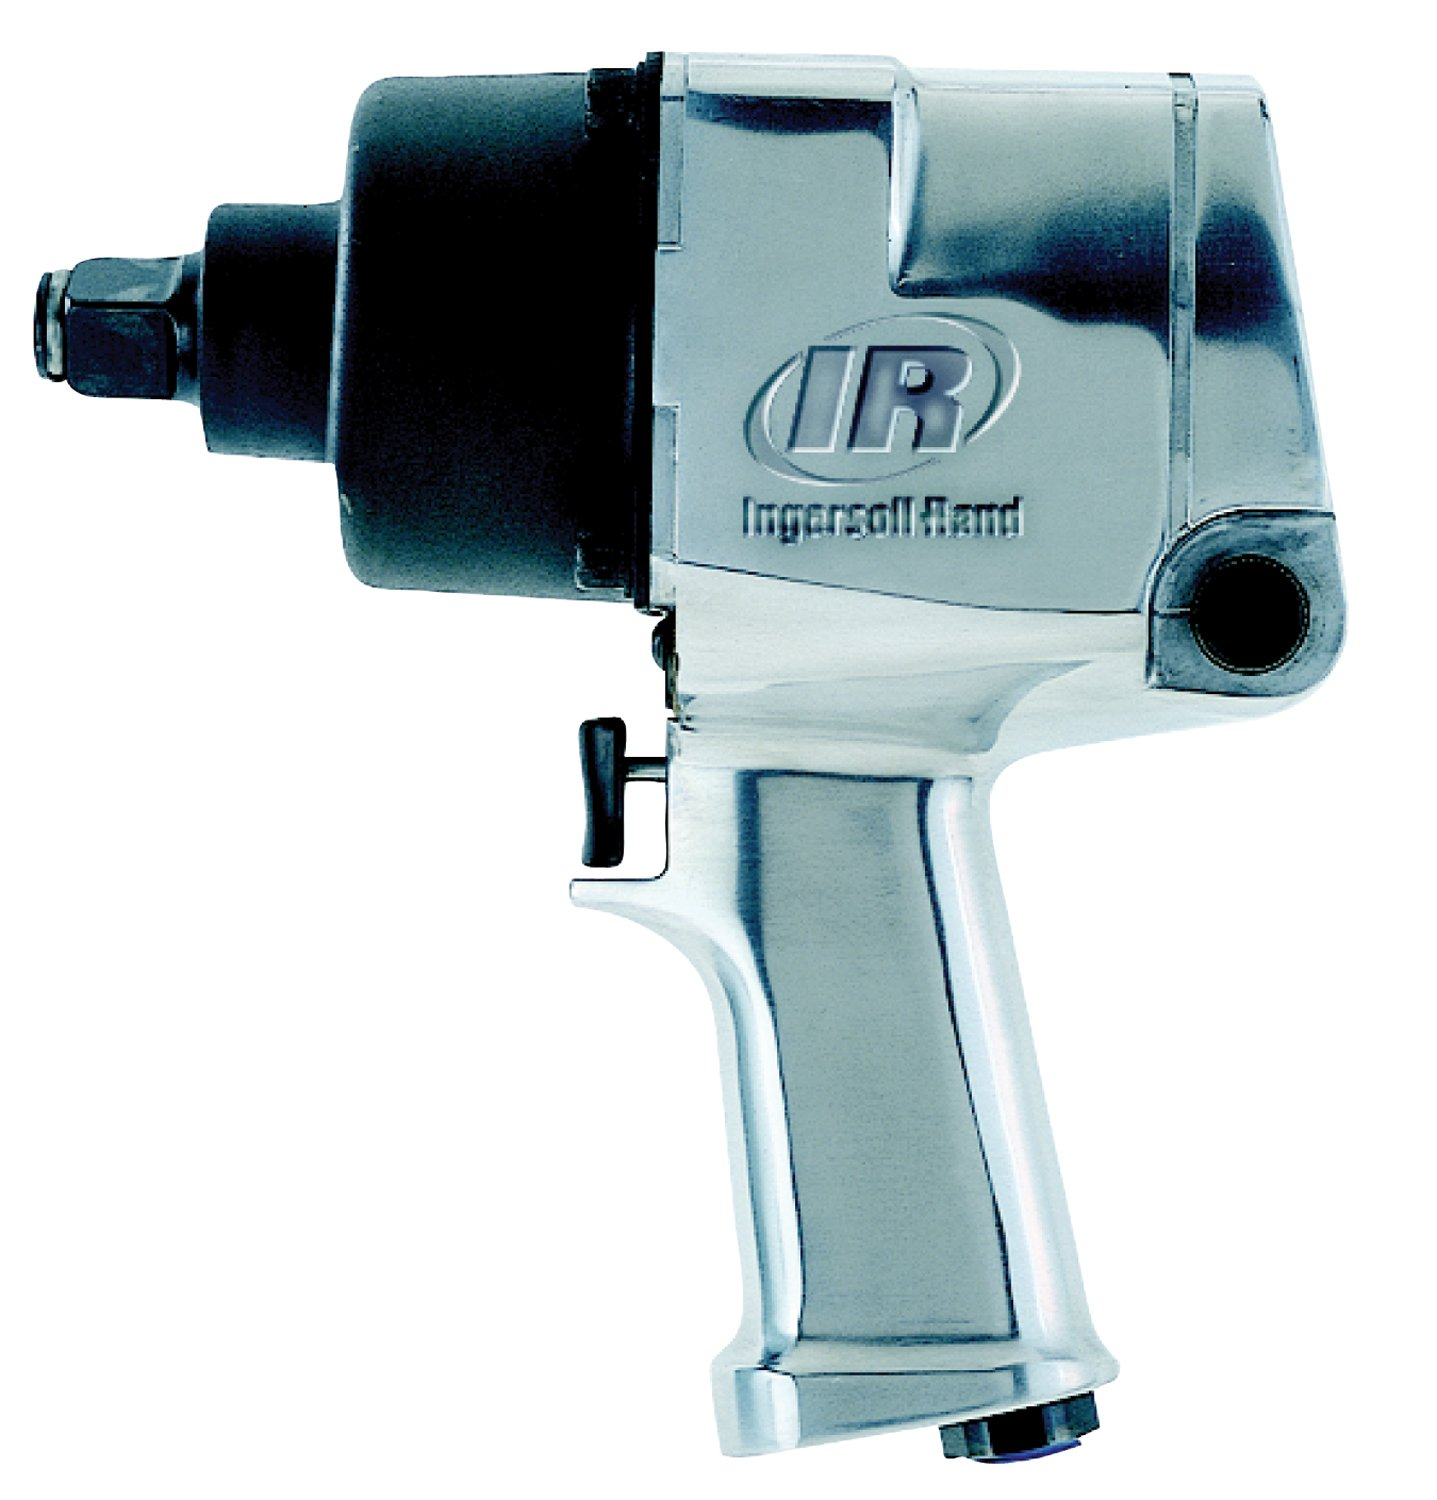 Ingersoll-Rand 261 3/4-Inch Super Duty Air Impact Wrench